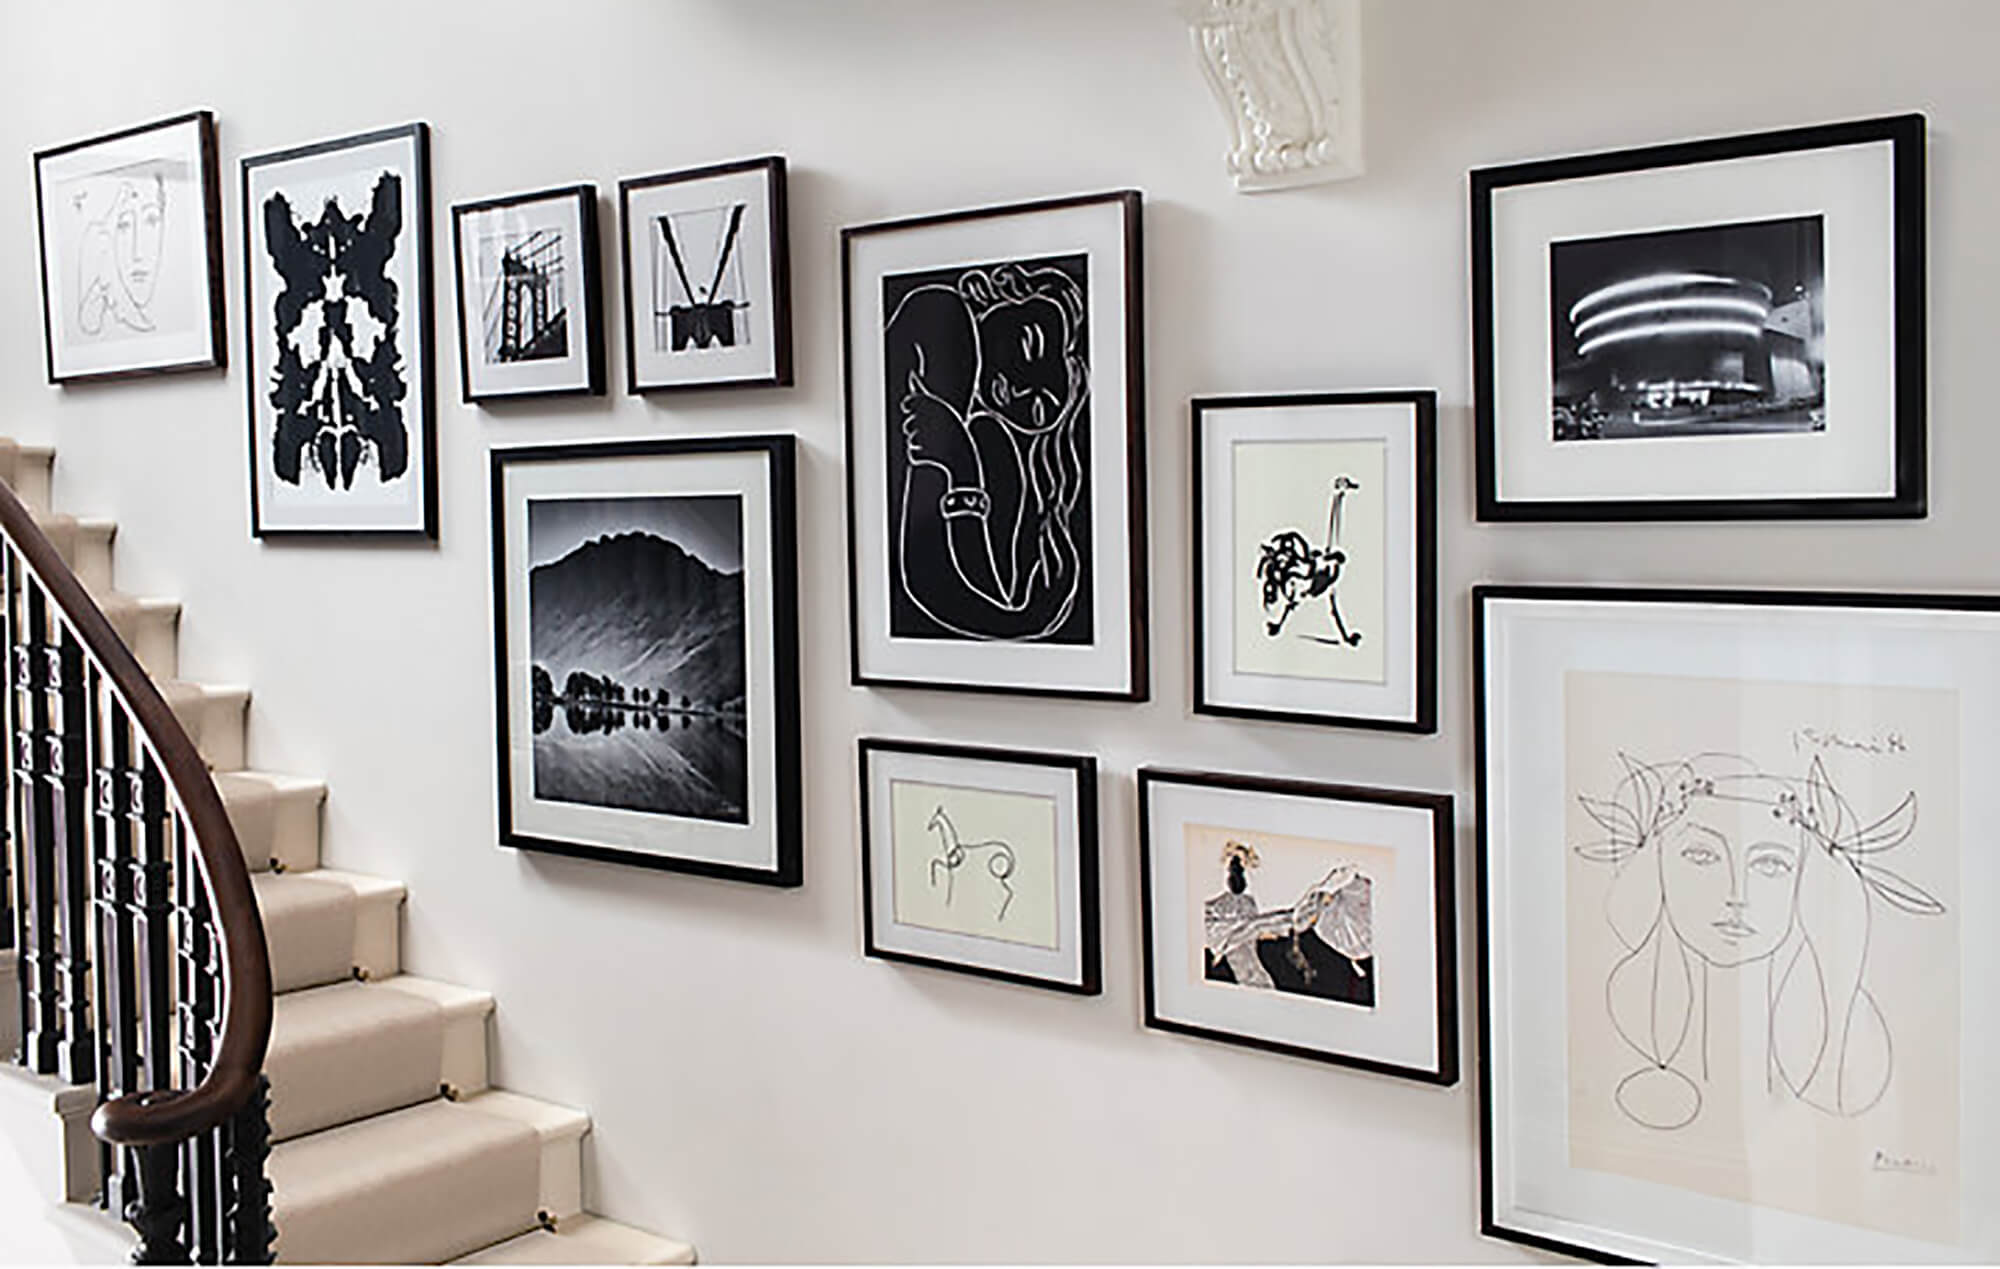 Simple picture hanging solutions for hallways - Neville Johnson